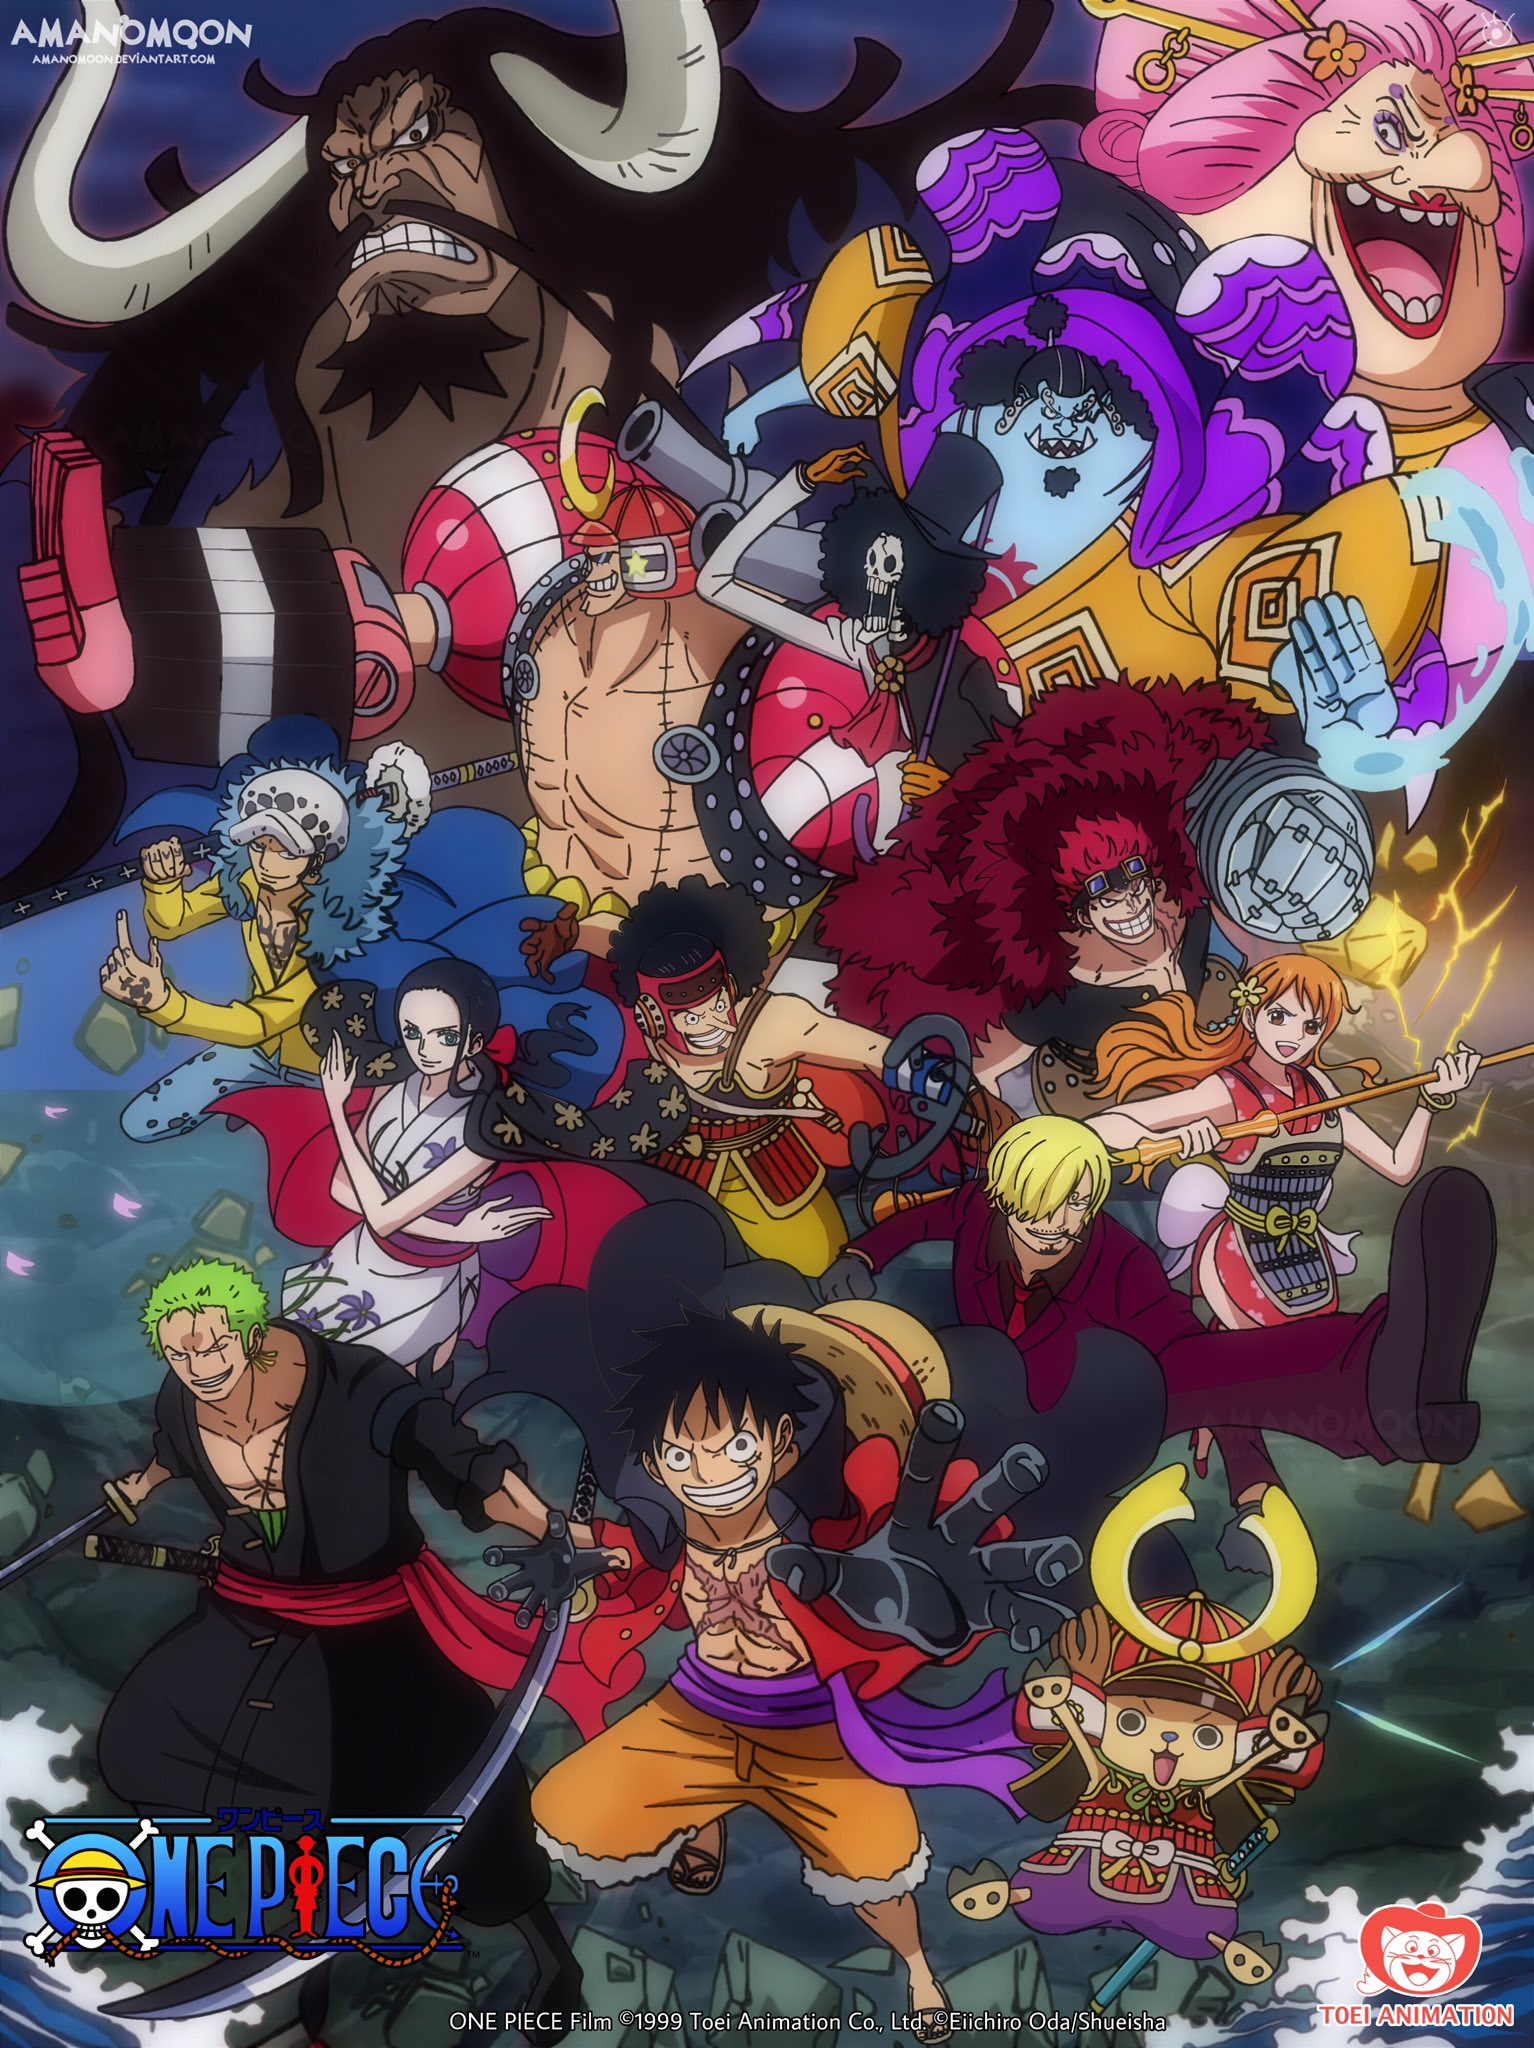 One Piece Episode 986 Release Date, Spoilers, Luffy's Big Fight